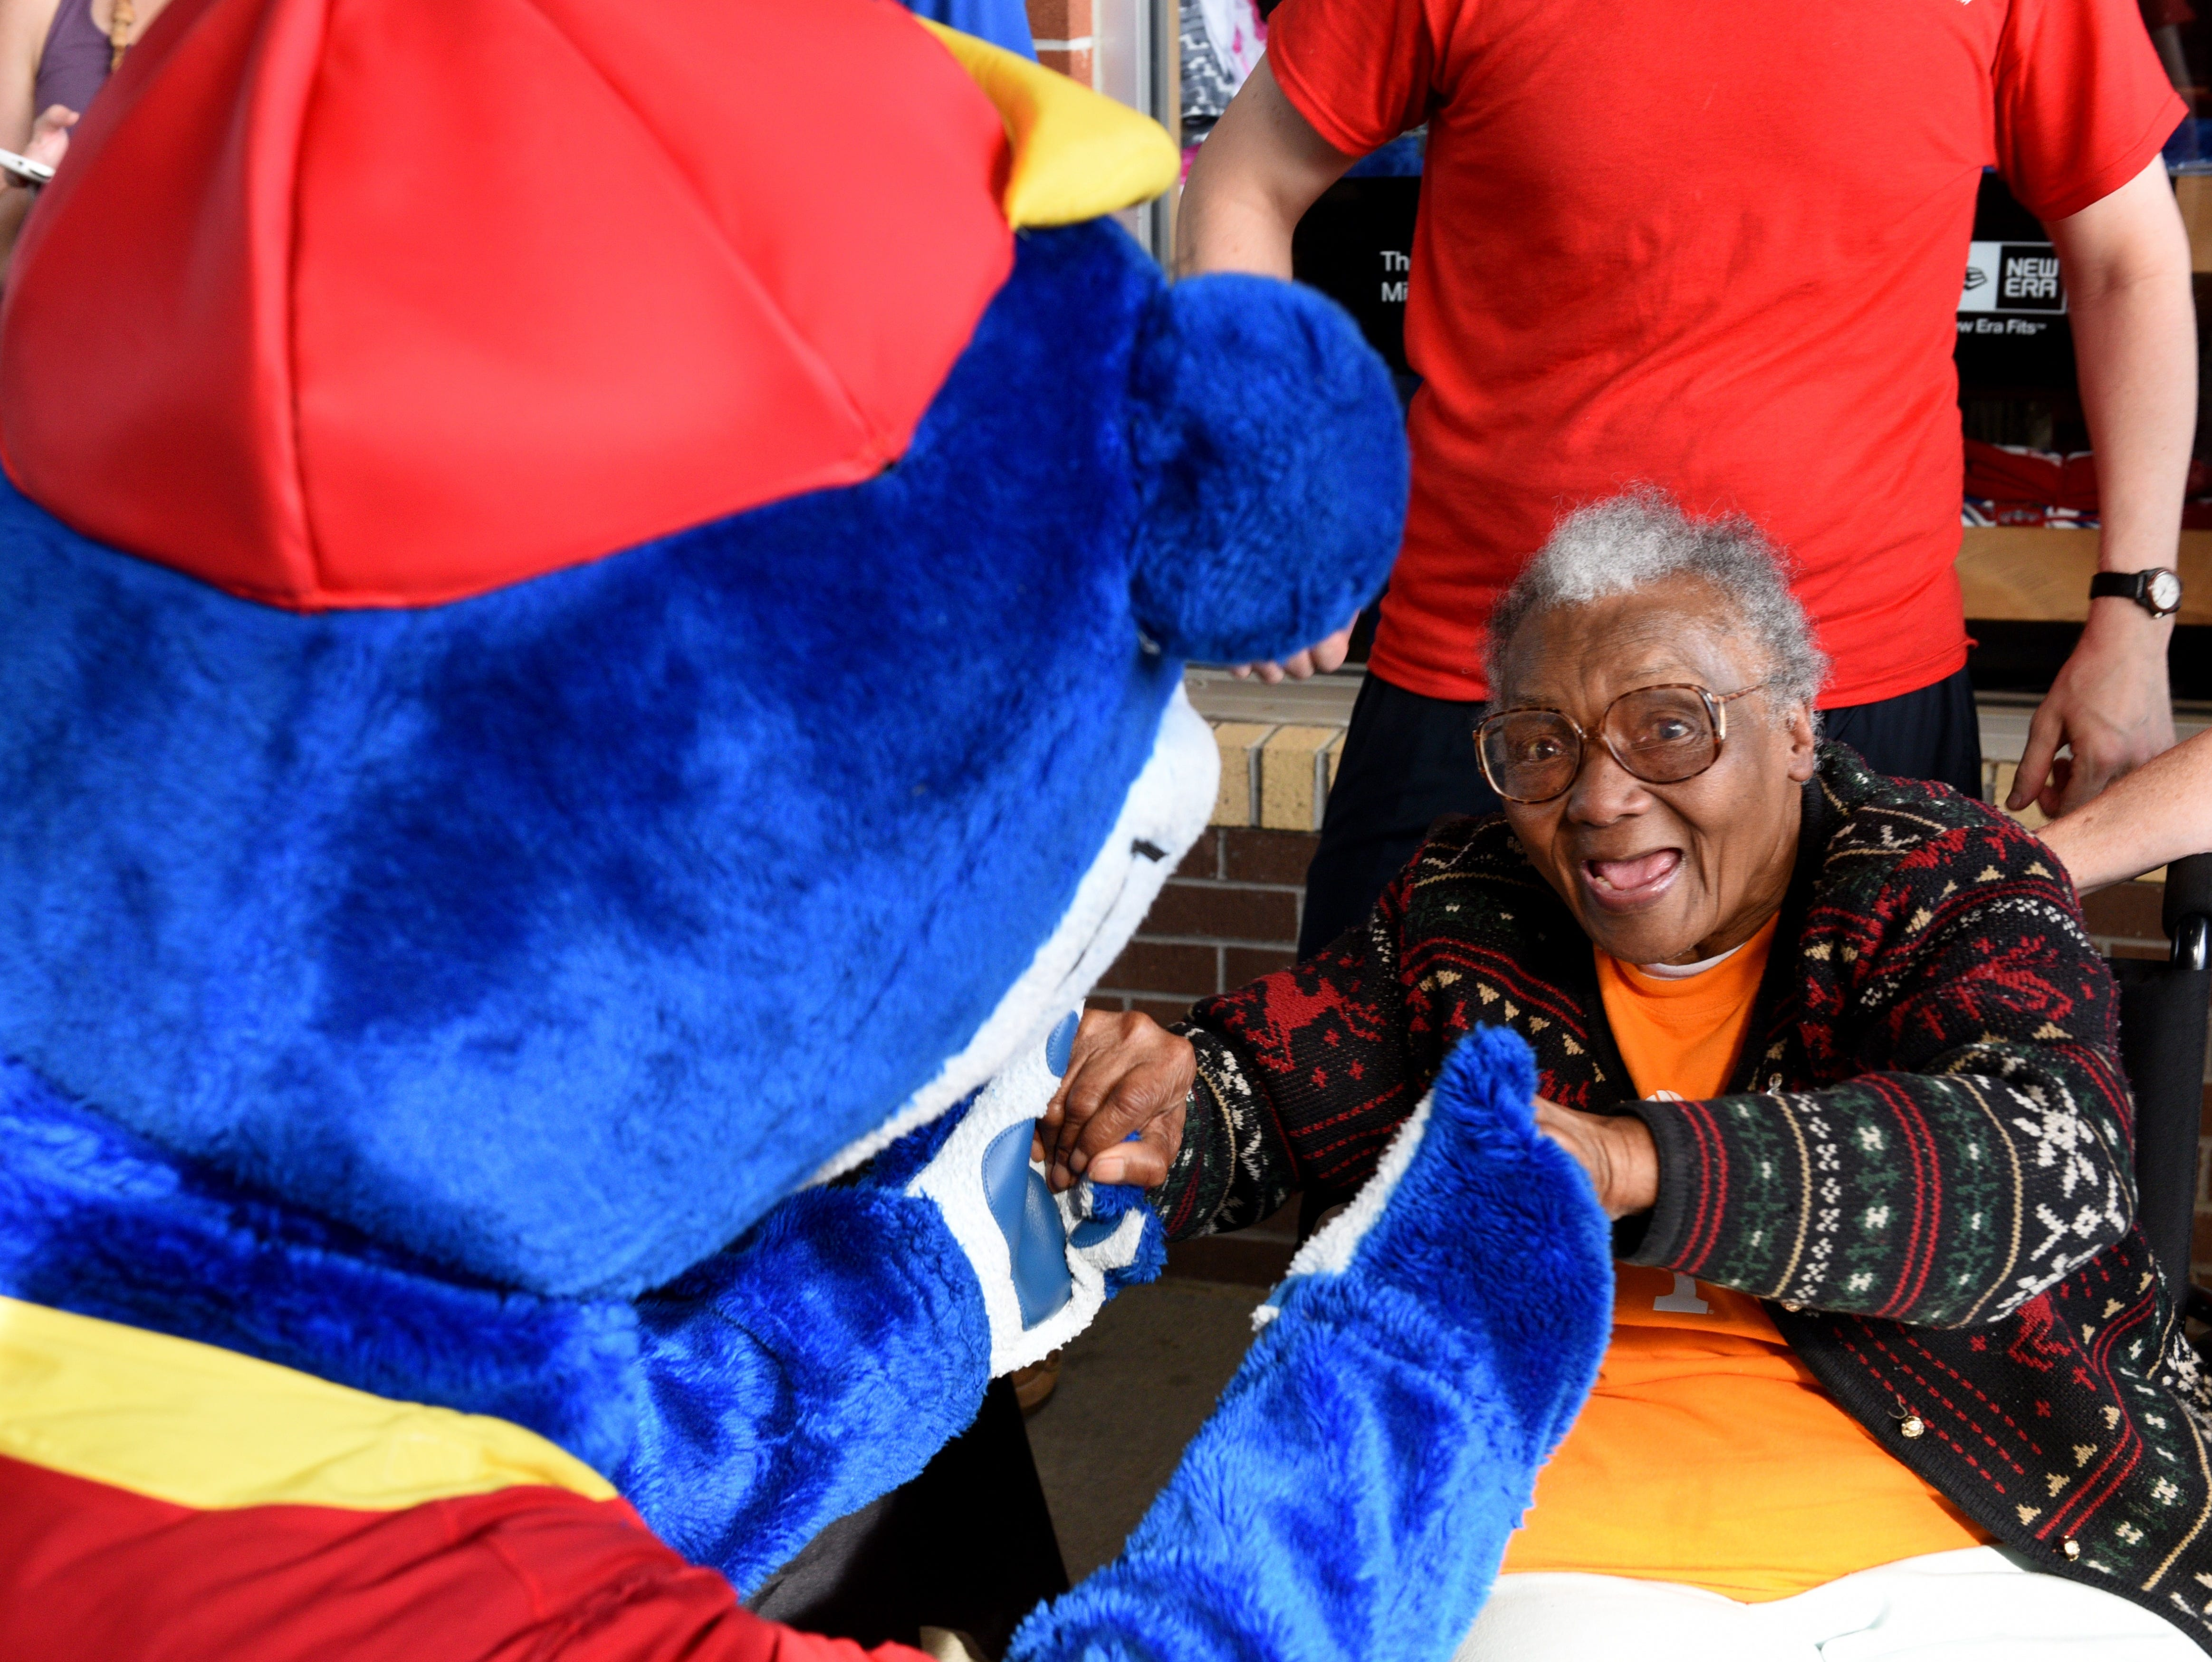 Helen Turner, co-founder of the Love Kitchen, greets the mascot before throwing out the first pitch at the Tennessee Smokies baseball game against the Mississippi Braves televised by CBS Sports Network Thursday, Jun. 18, 2015.